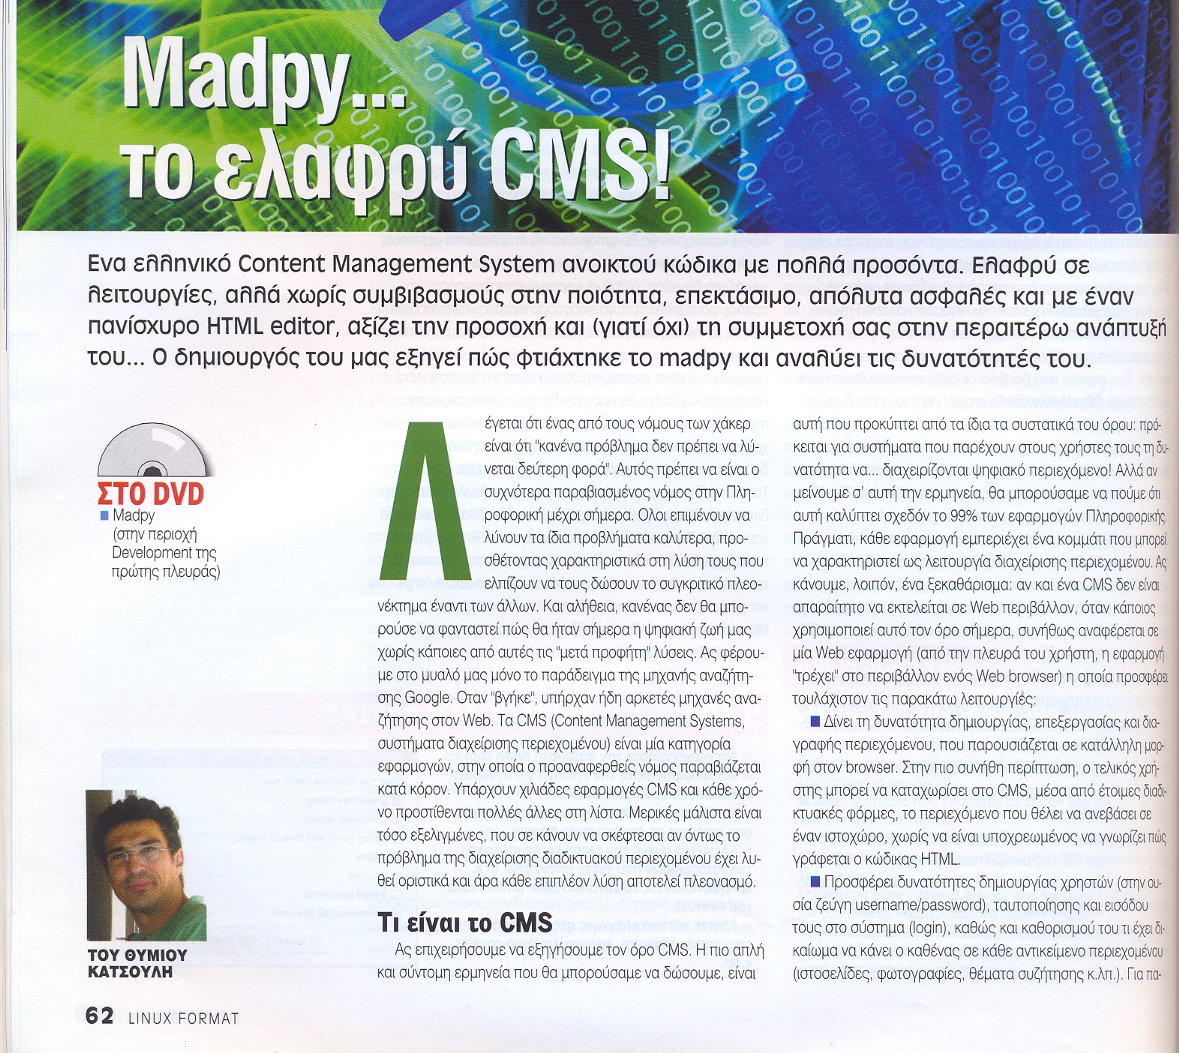 madpy-article-page1